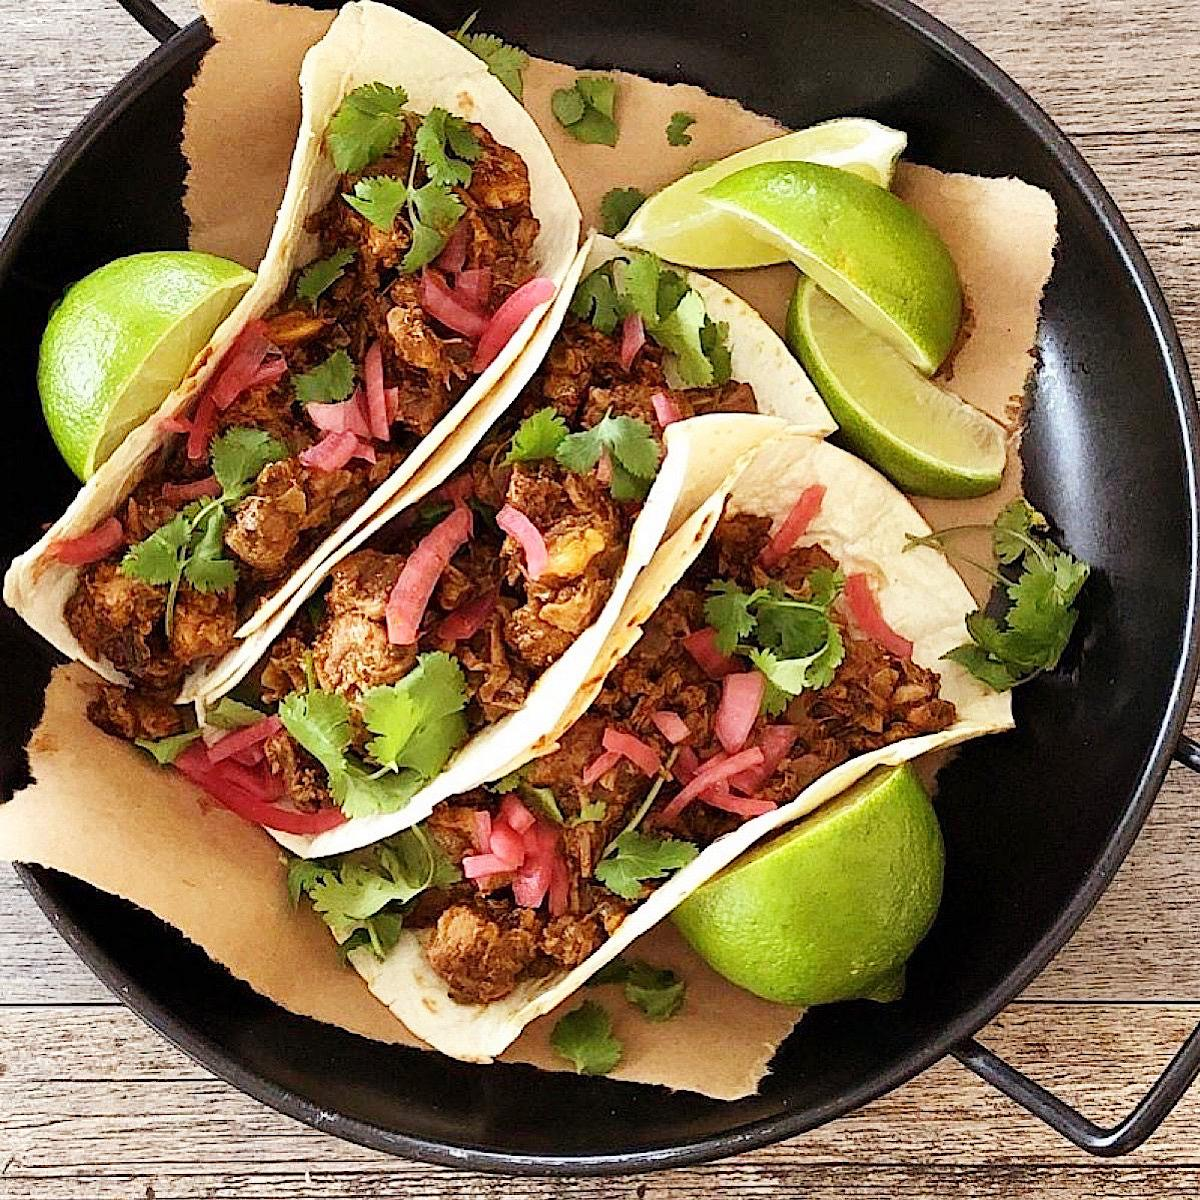 Low carb tacos made with slow cooked pork shoulder